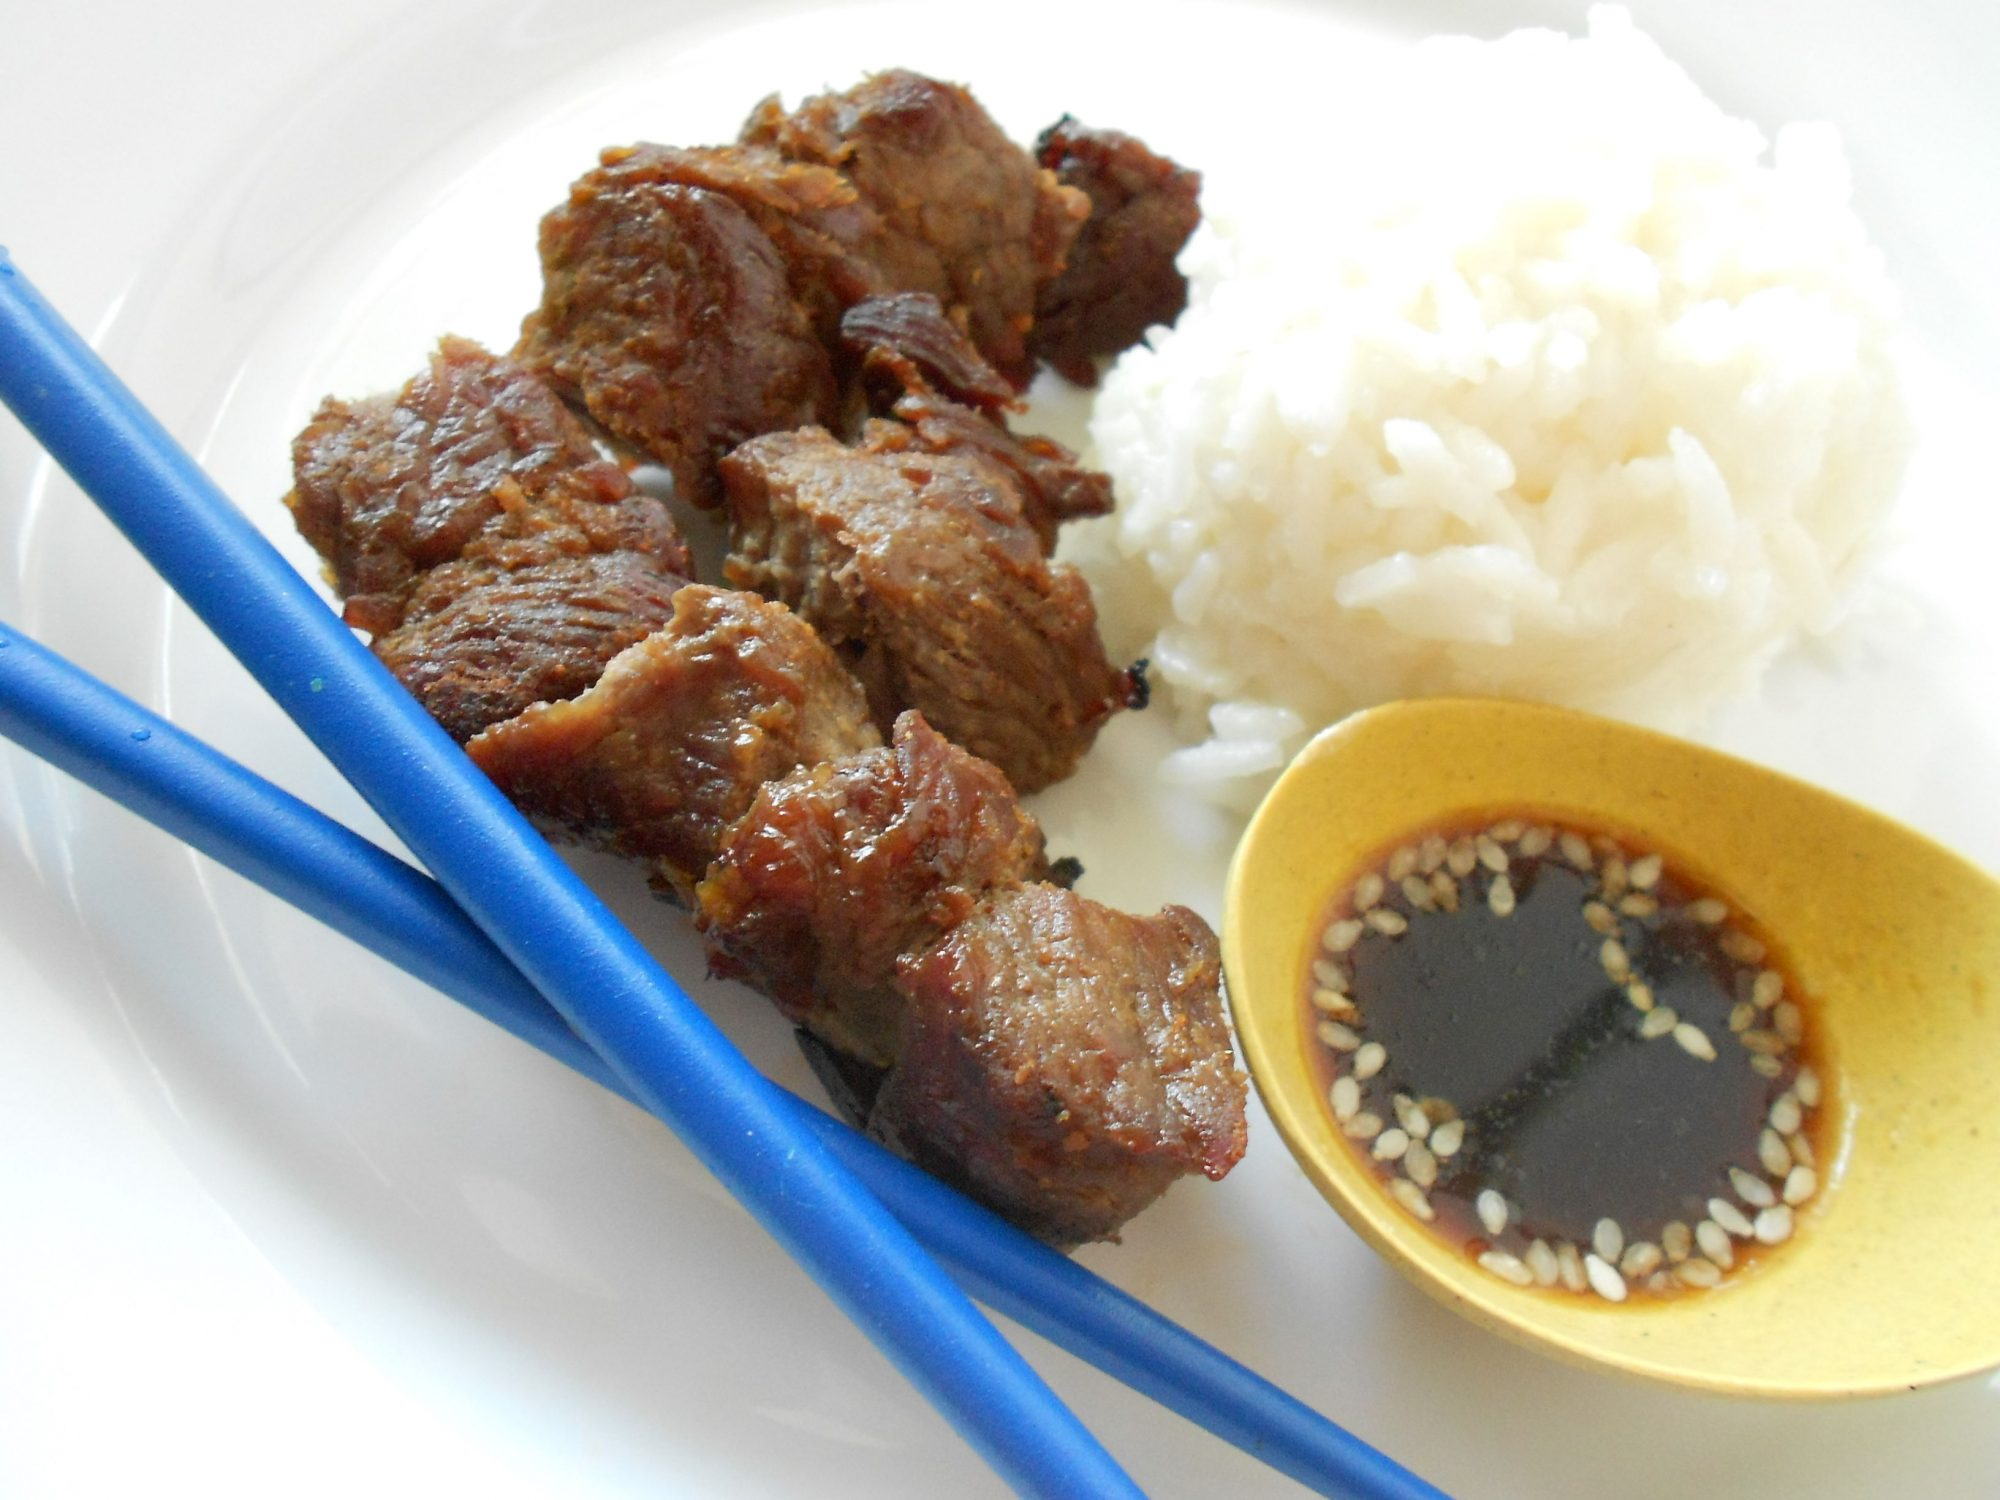 Thin slices of sirloin steak are marinated in a sweet and savory combination of mirin and soy, rolled around pieces of green onion, and broiled or grilled.